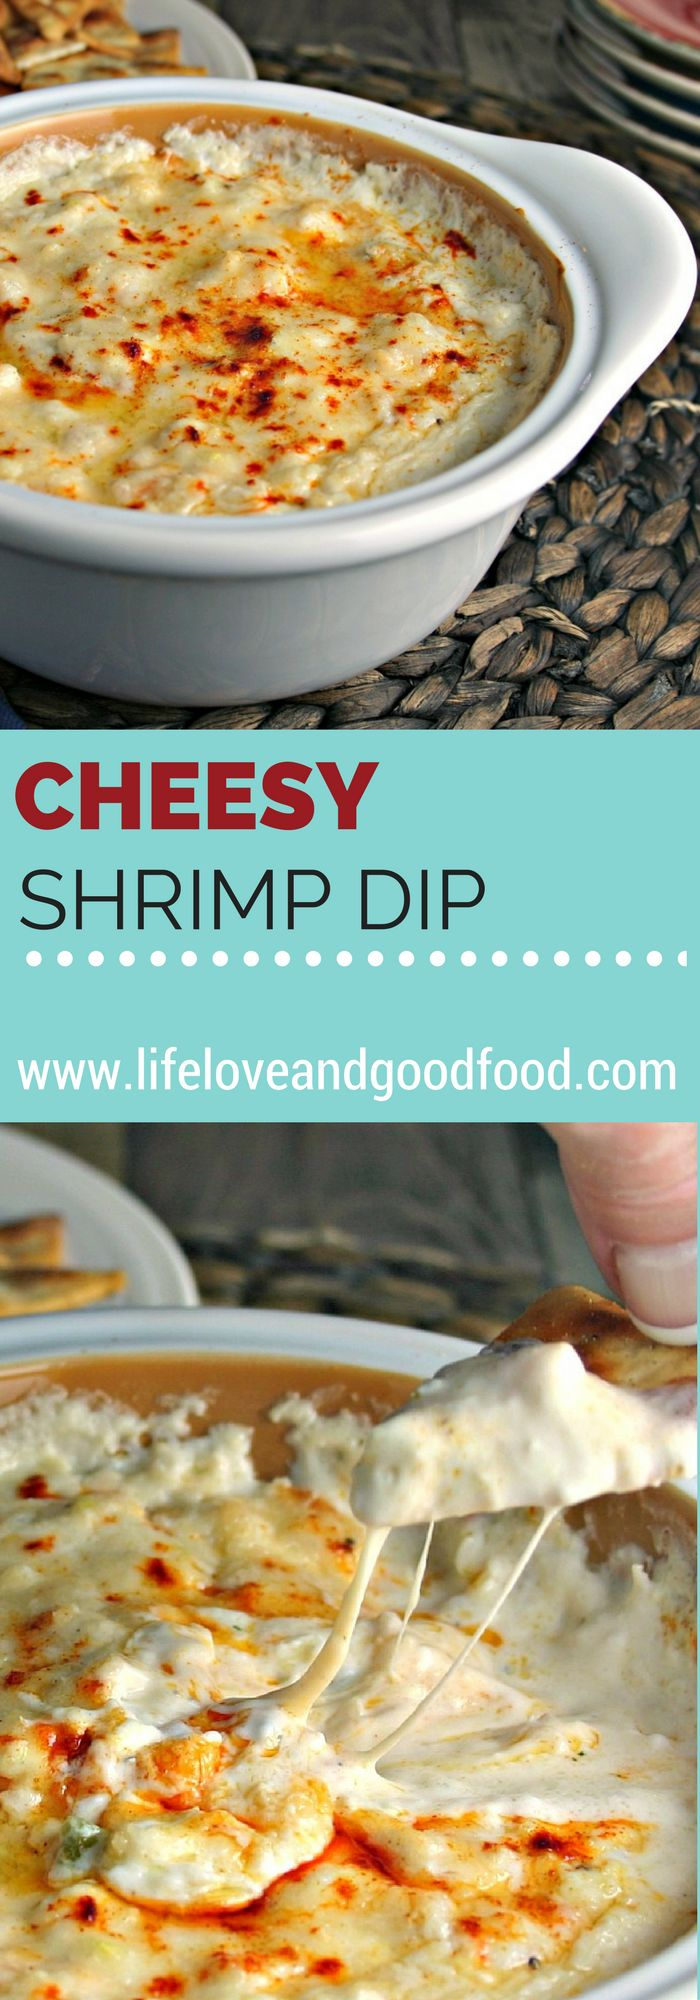 Cheesy Shrimp Dip | Life, Love, and Good Food